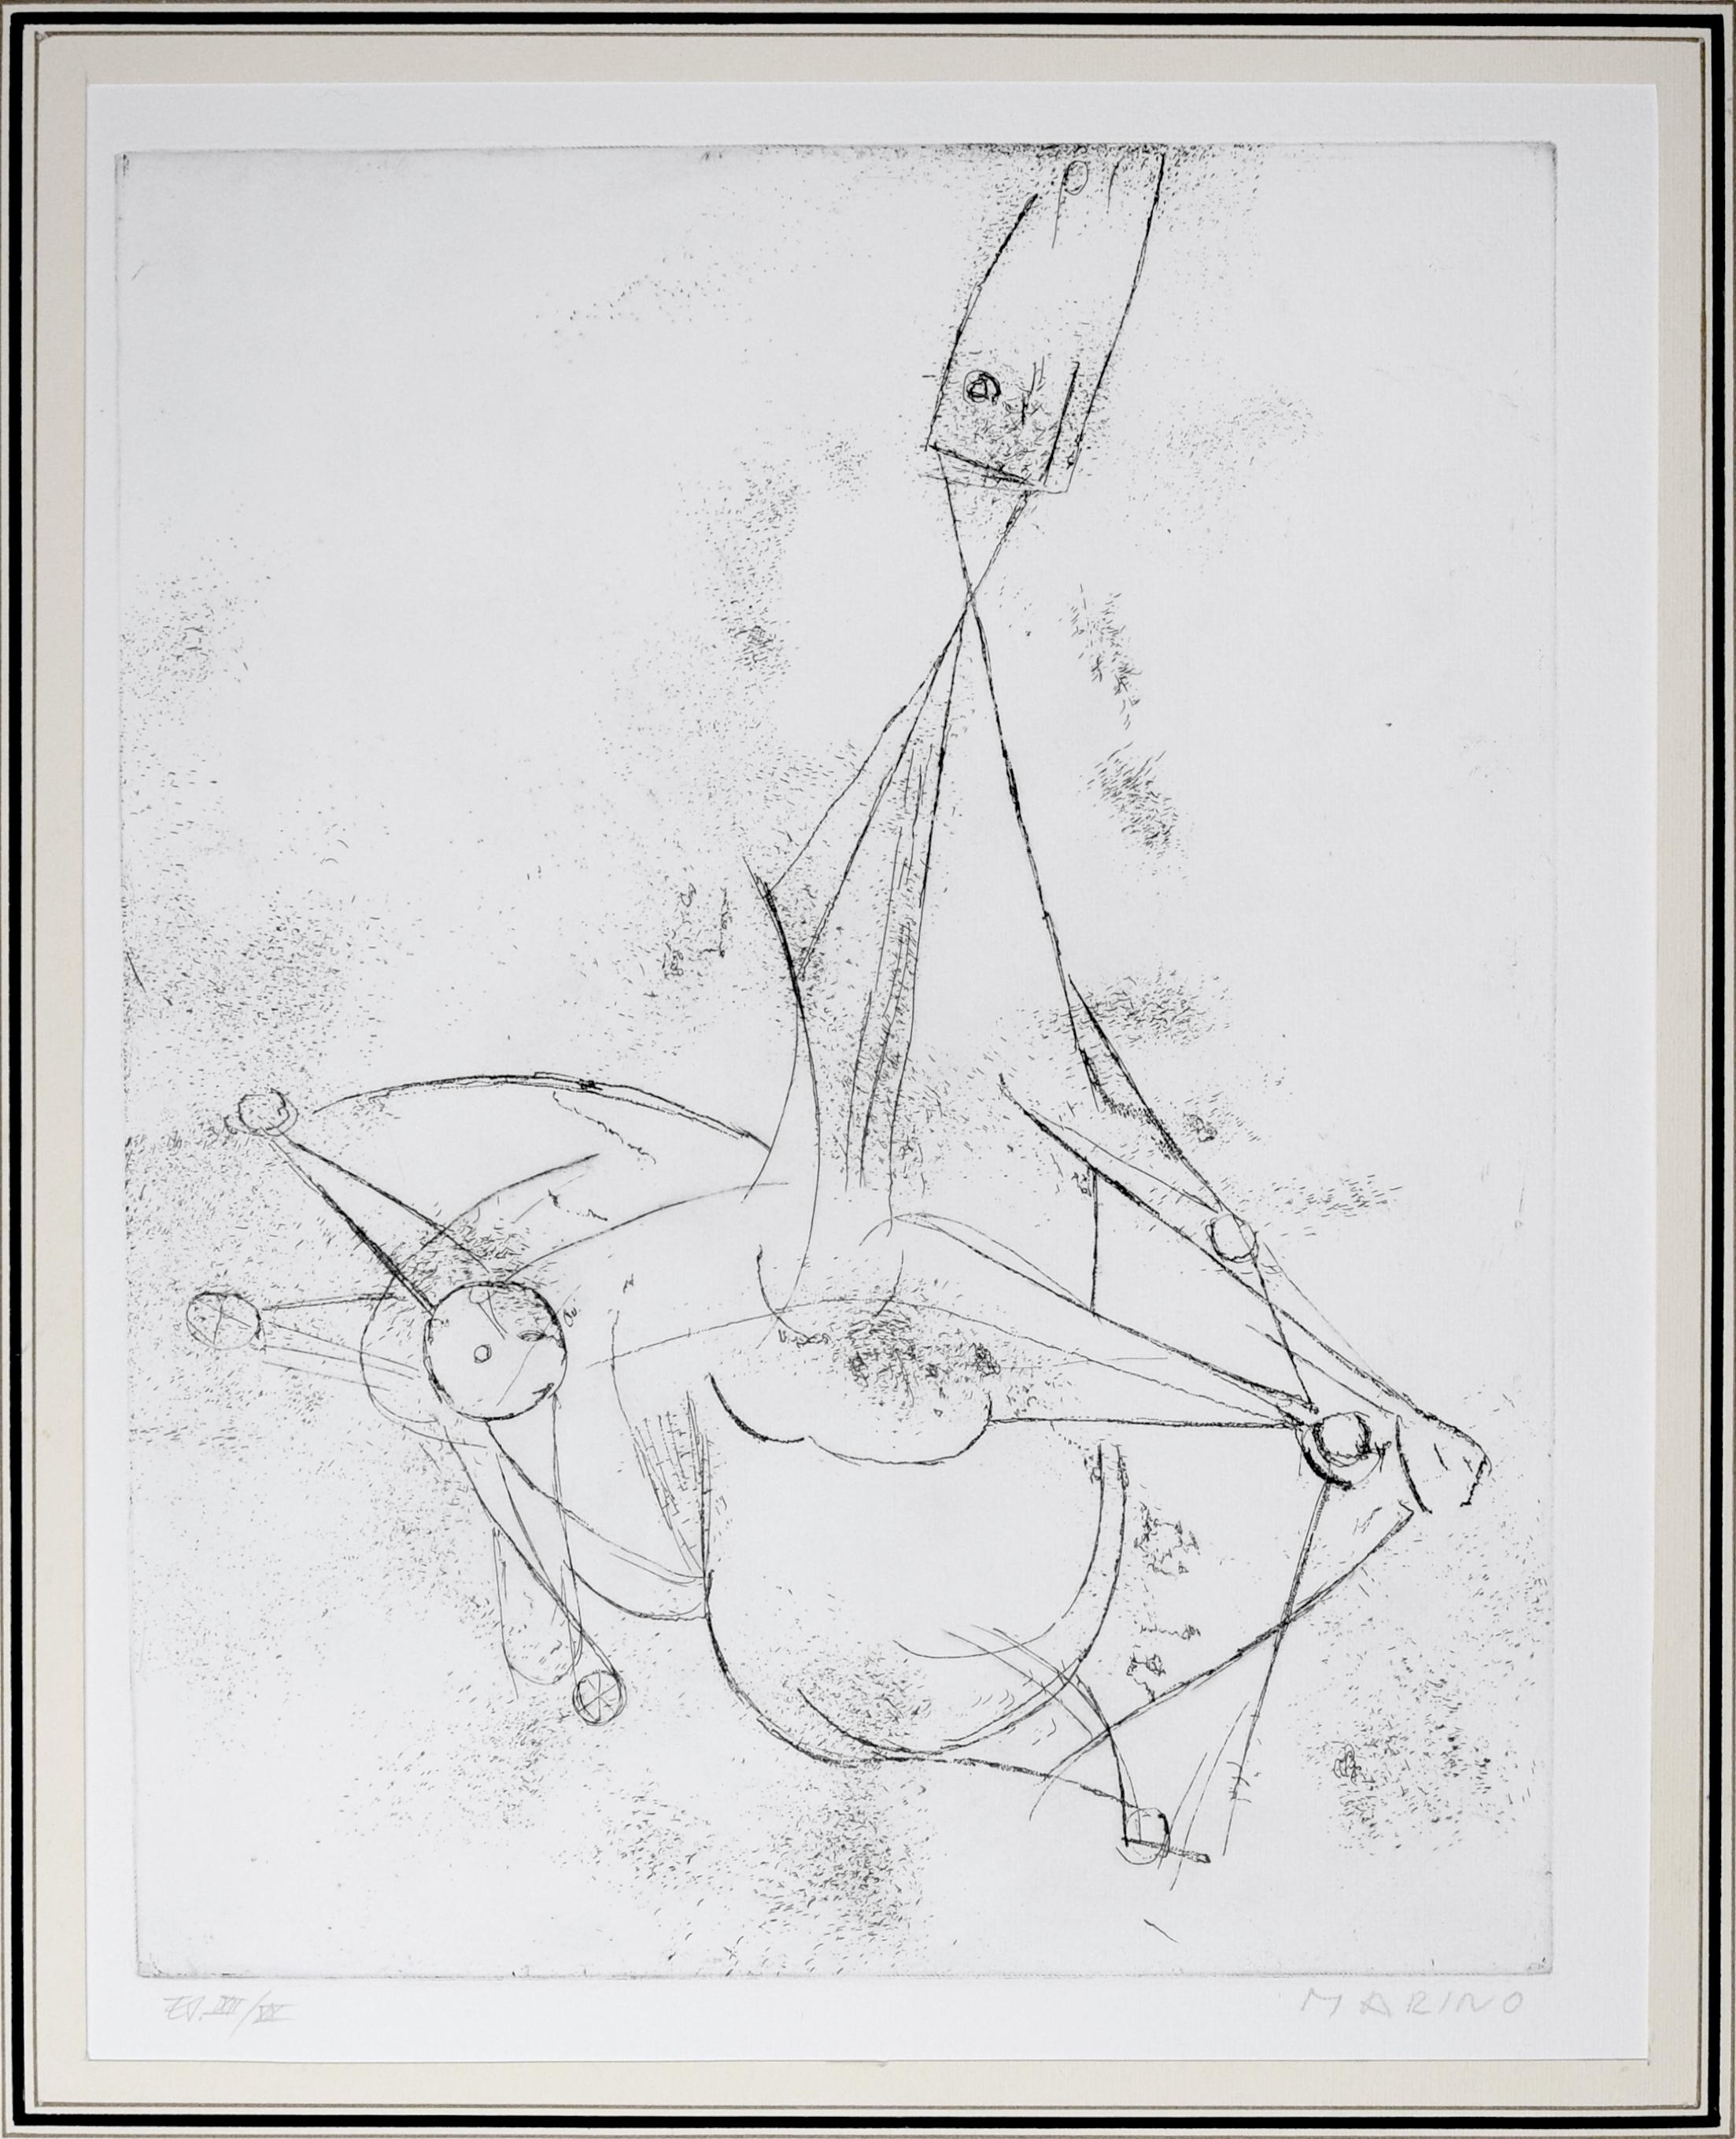 Miracolo (Miracle) - Original Etching - 1969